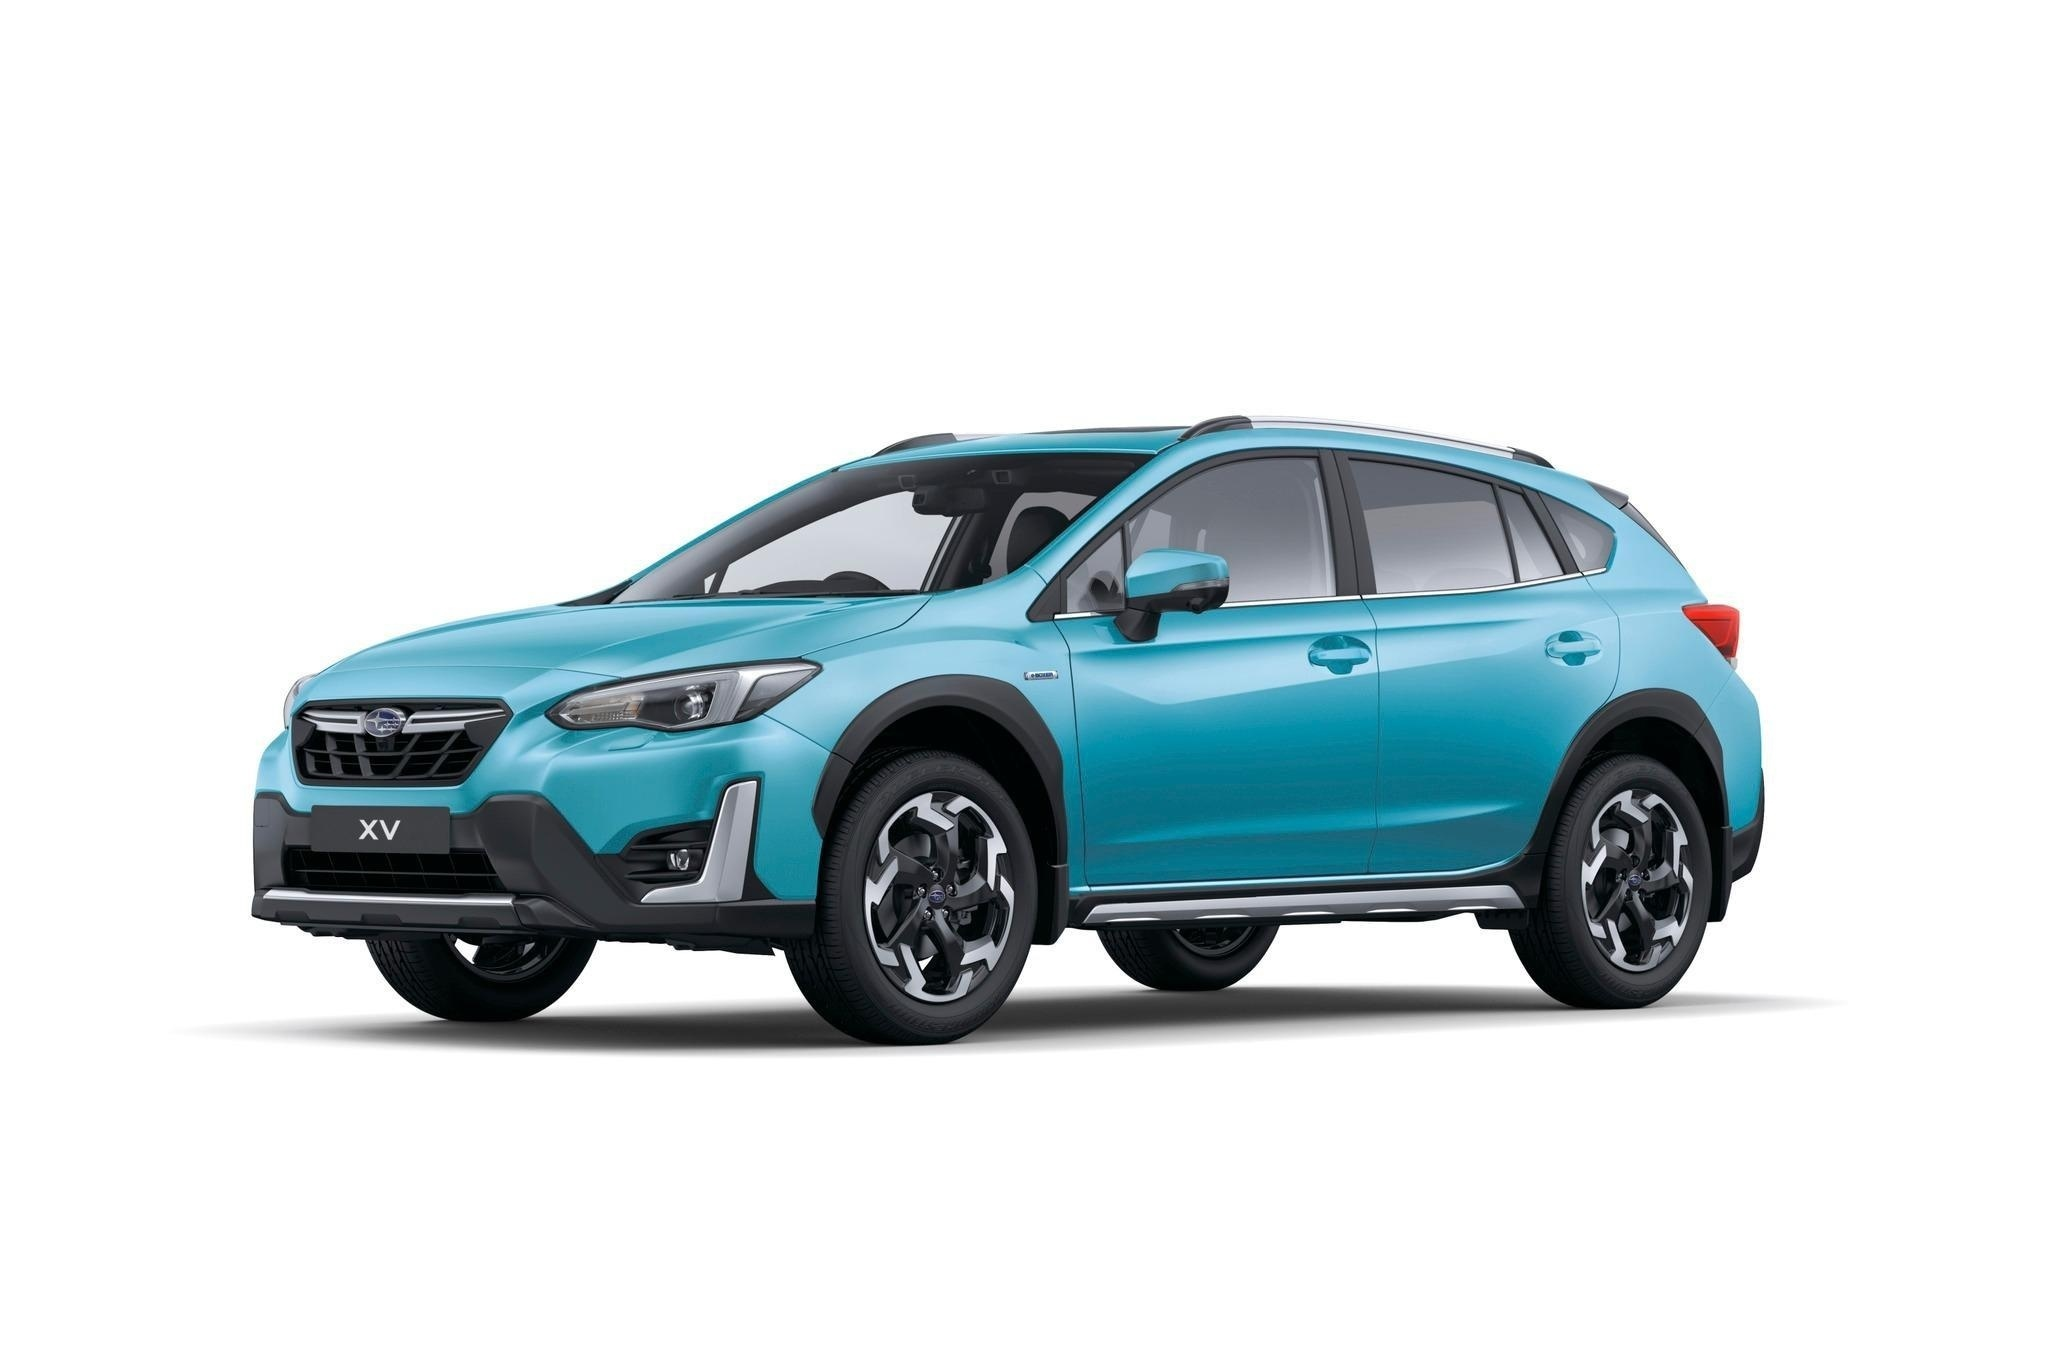 2021 Subaru XV HYBRID S AWD MY21 / Automatic (CVT) / Wagon / 2.0L / 4 Cylinder / Petrol / Electric / 4x4 / 4 door / Model Year '21 October release 08J621